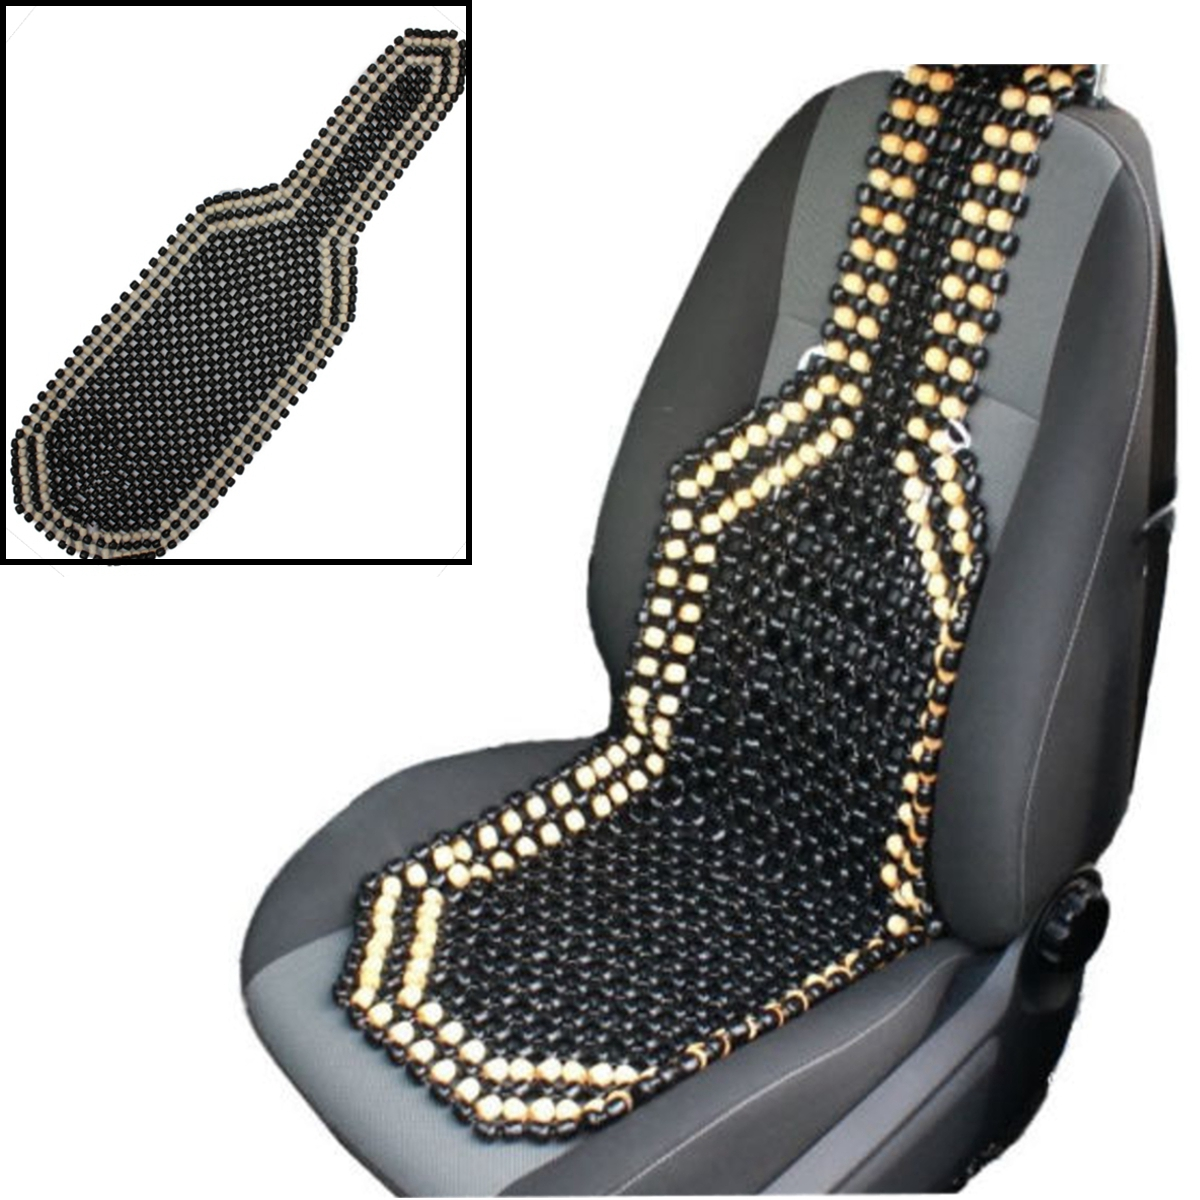 Natural Wooden Beaded Massage Seat Cover Cushion Breathable Car Taxi Truck  /""